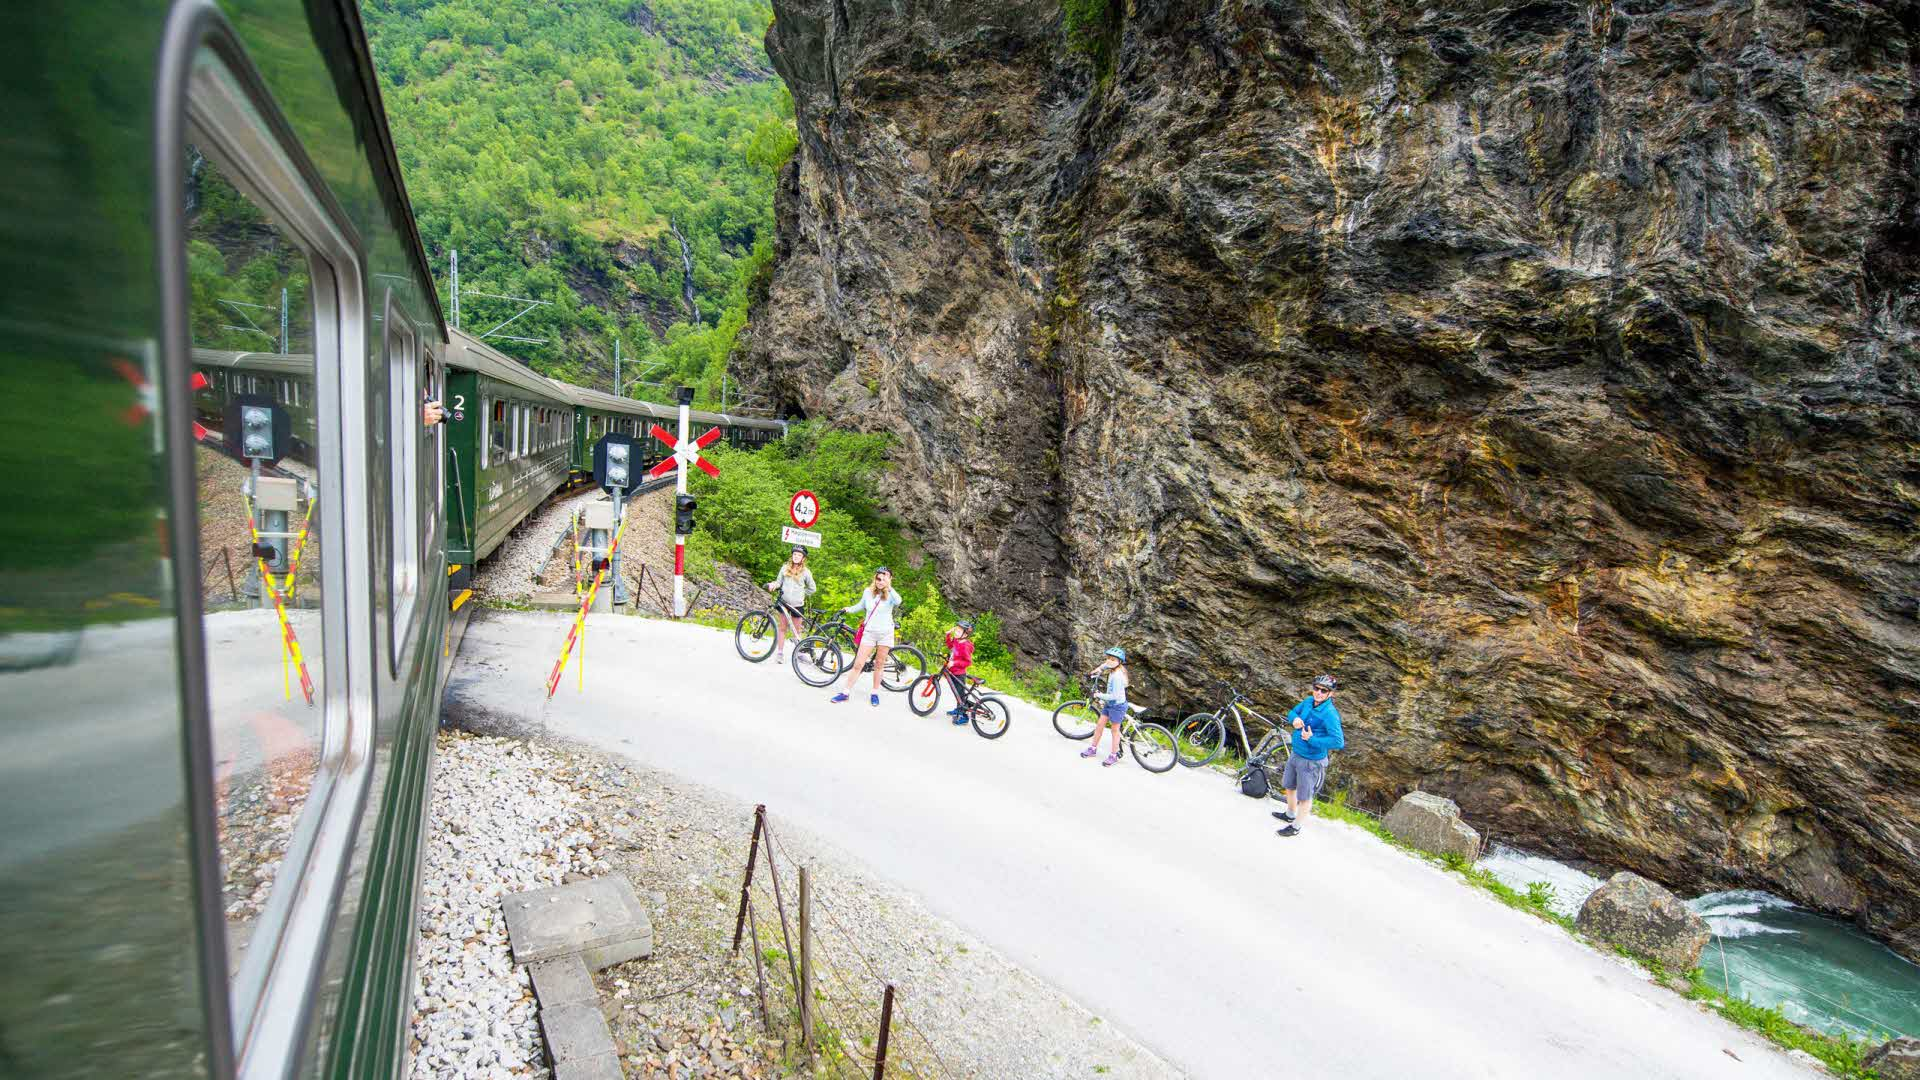 Family of 5 stops and wait on their bikes on gravel road in the Flam valley as The Flam Railway passes in summer